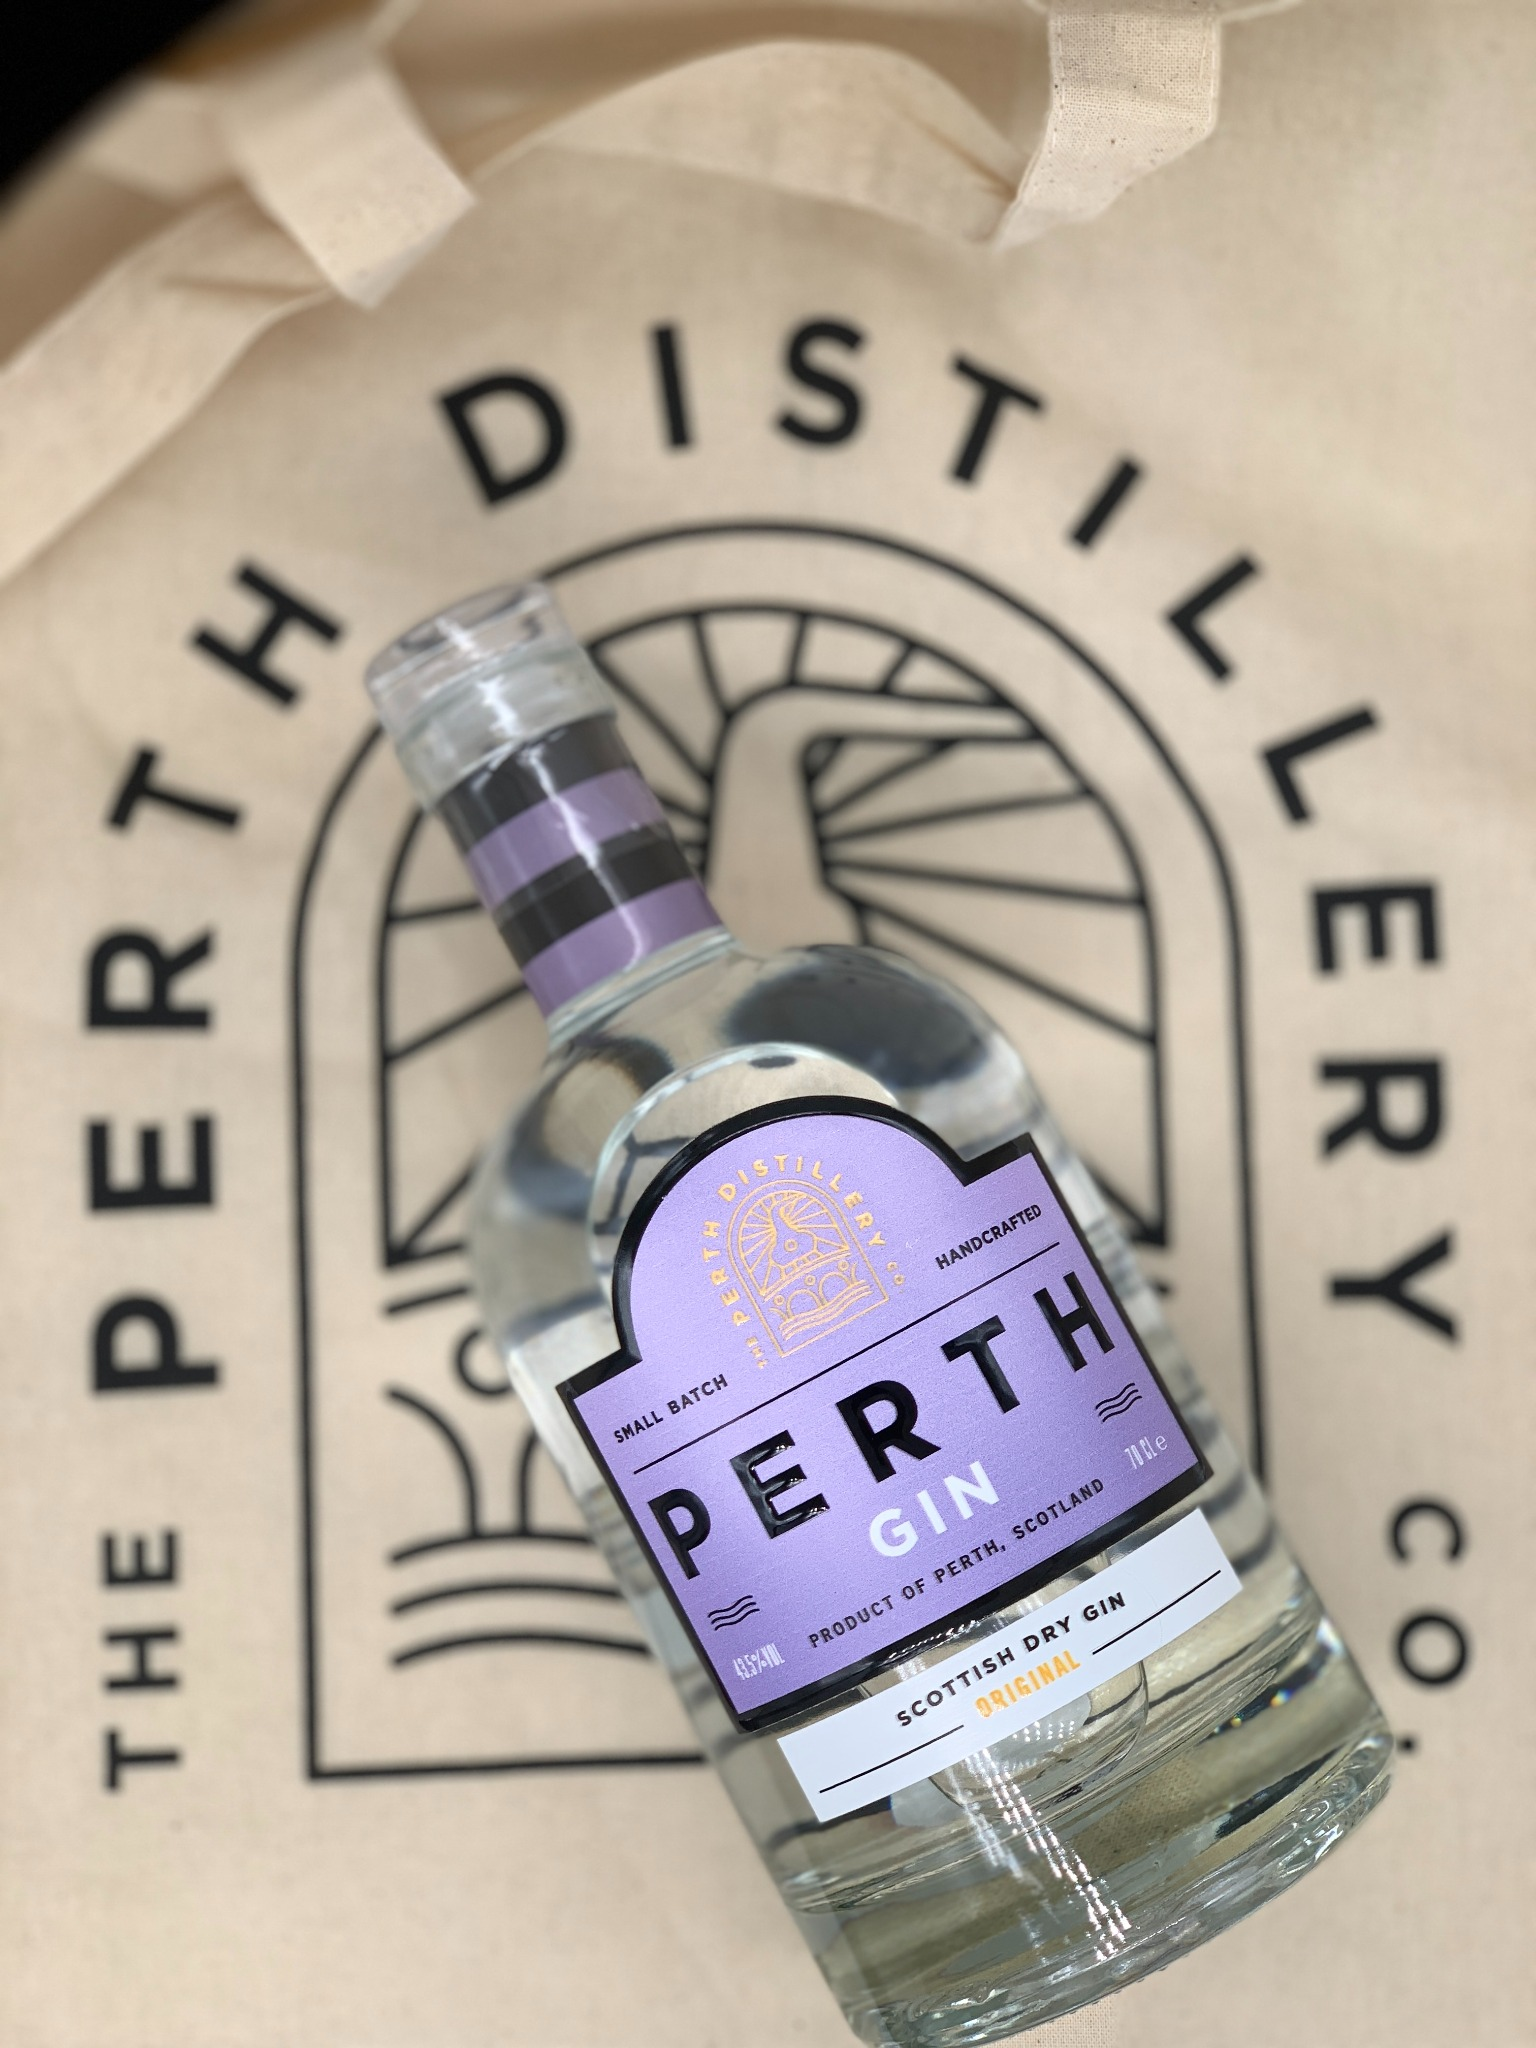 Perth Gin Original 70cl - MOTHERS DAY - Delivery THURSDAY 11th March 2021